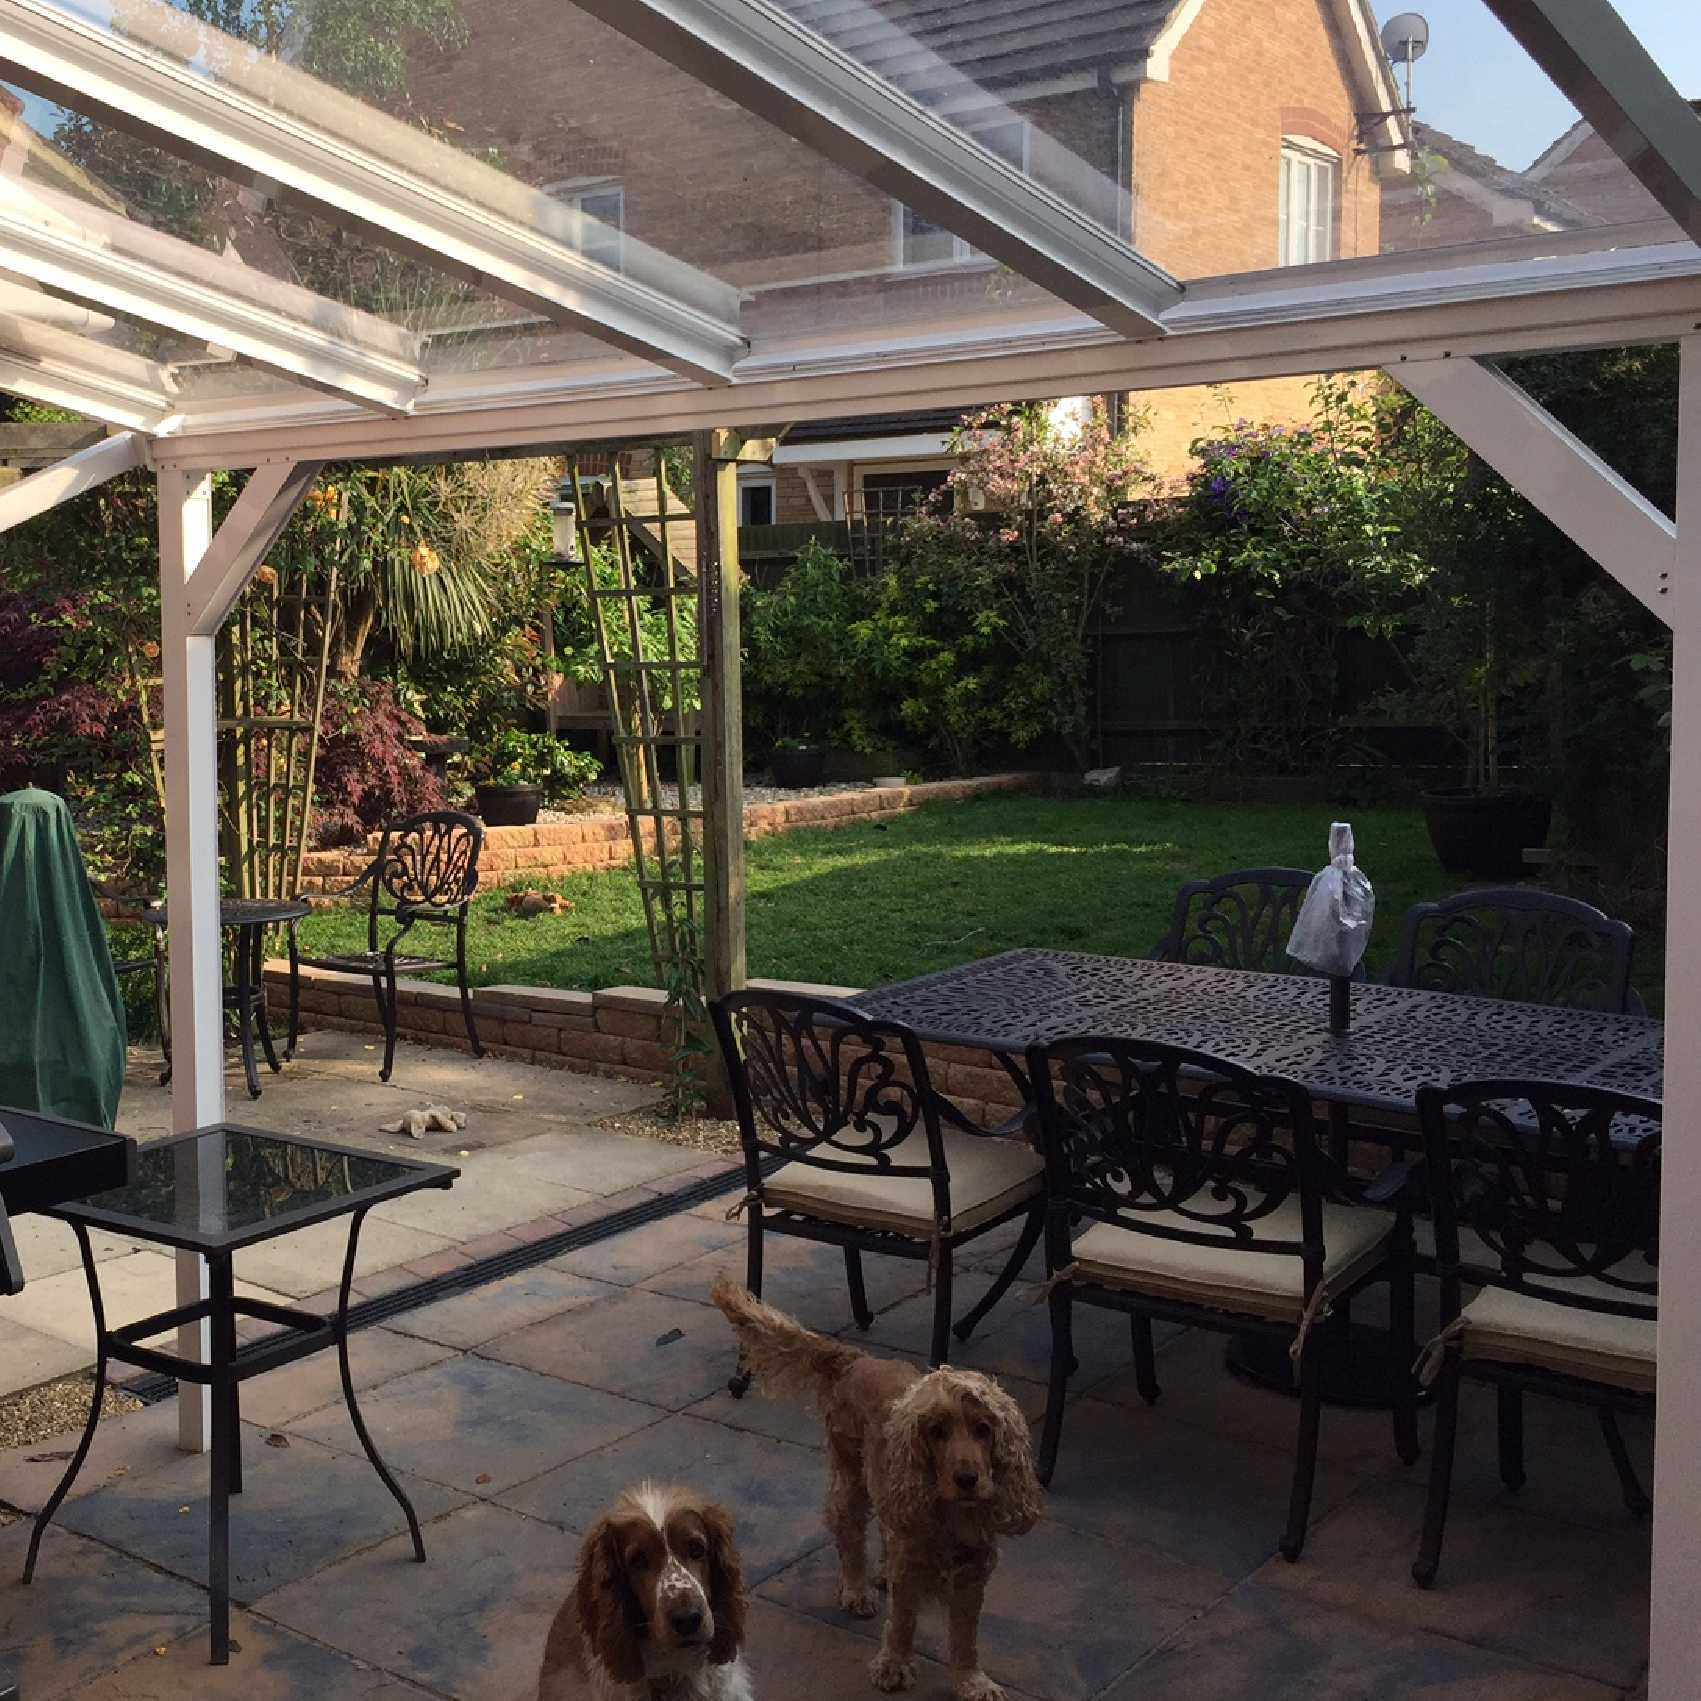 Affordable Omega Smart Lean-To Canopy UNGLAZED for 6mm Glazing - 7.0m (W) x 3.0m (P), (4) Supporting Posts